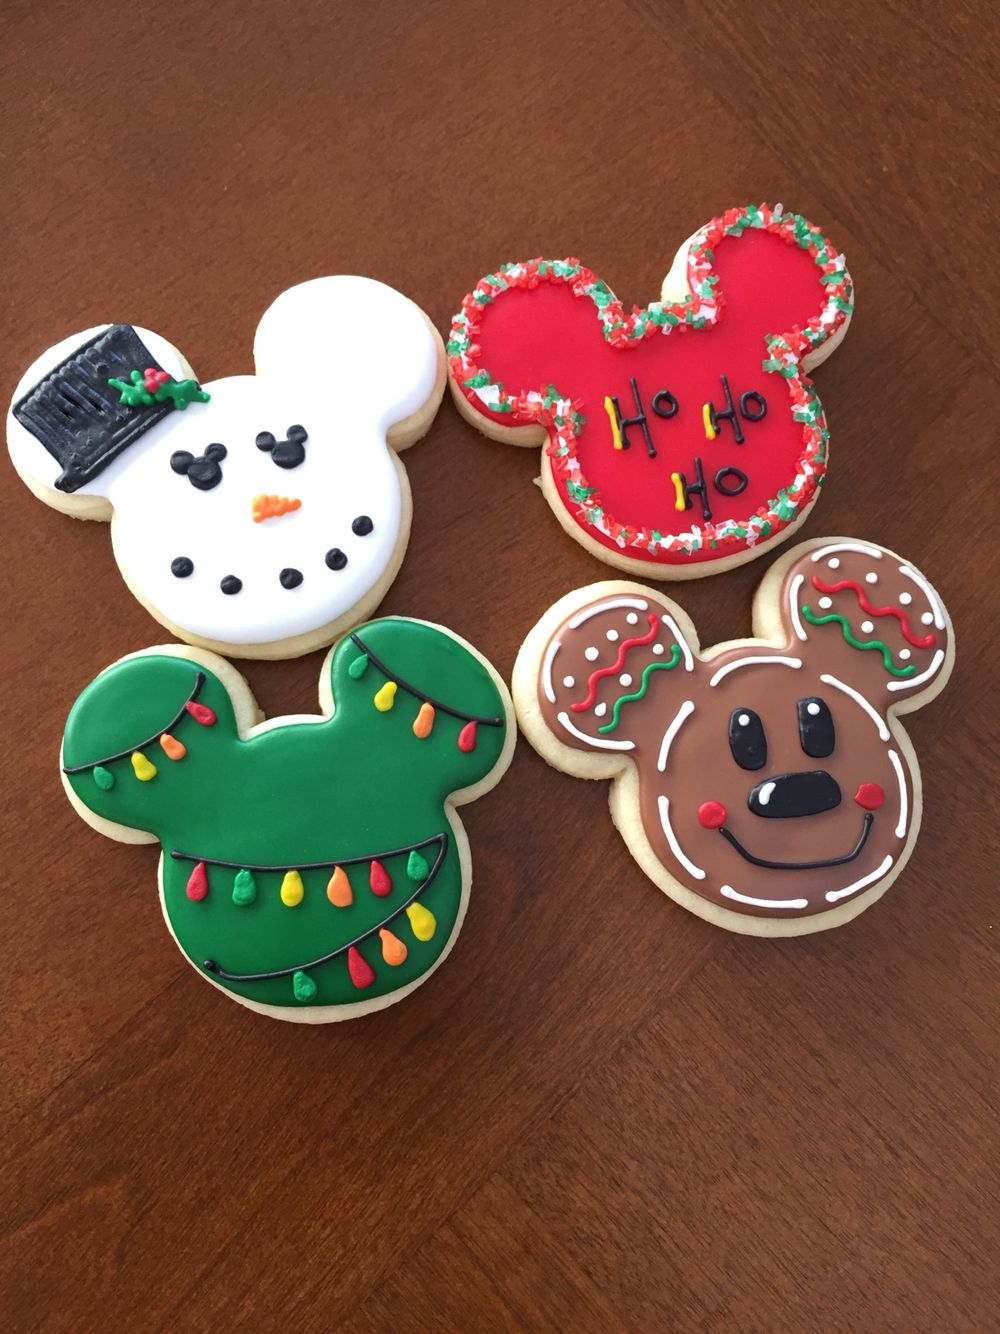 Www Facebook Com Cocossugarshack Decorated Cutout Cookie Christmas